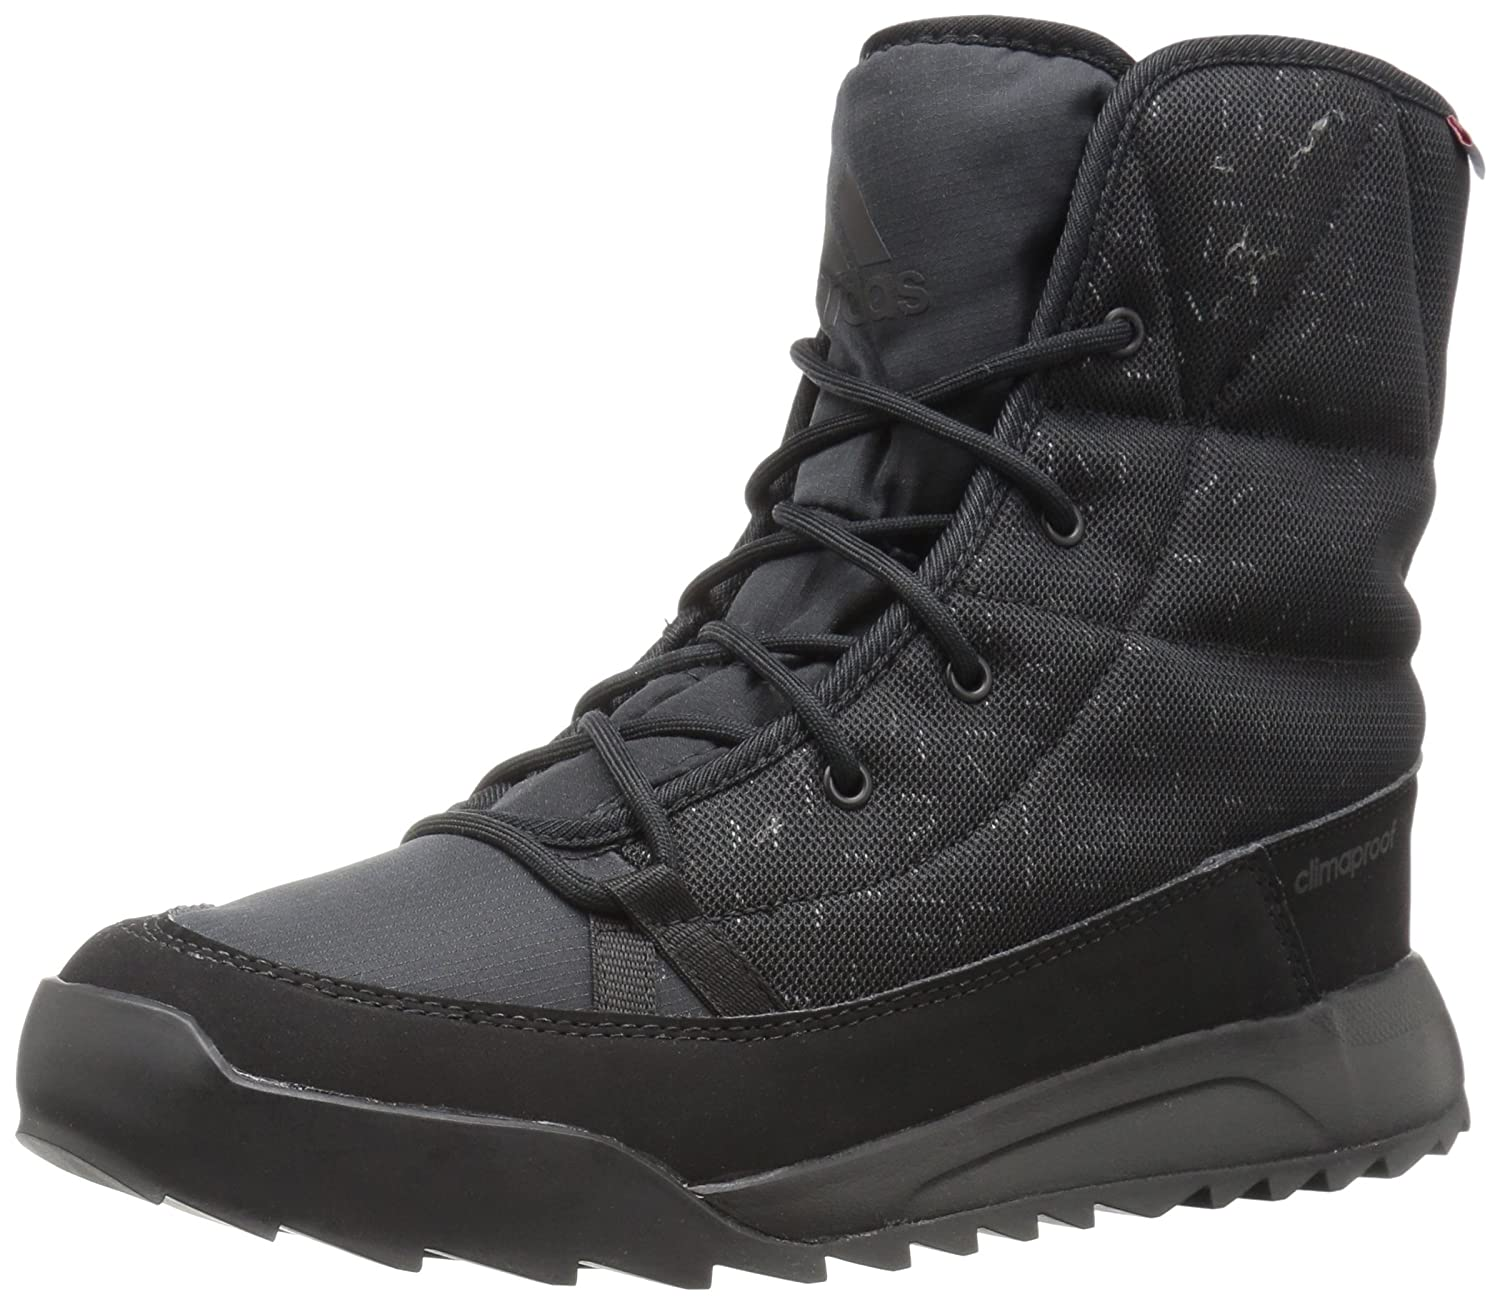 adidas outdoor Women's CW Choleah Insulated CP Snow Boot B018WSXMNS 6 B(M) US|Black/Reflective/Black